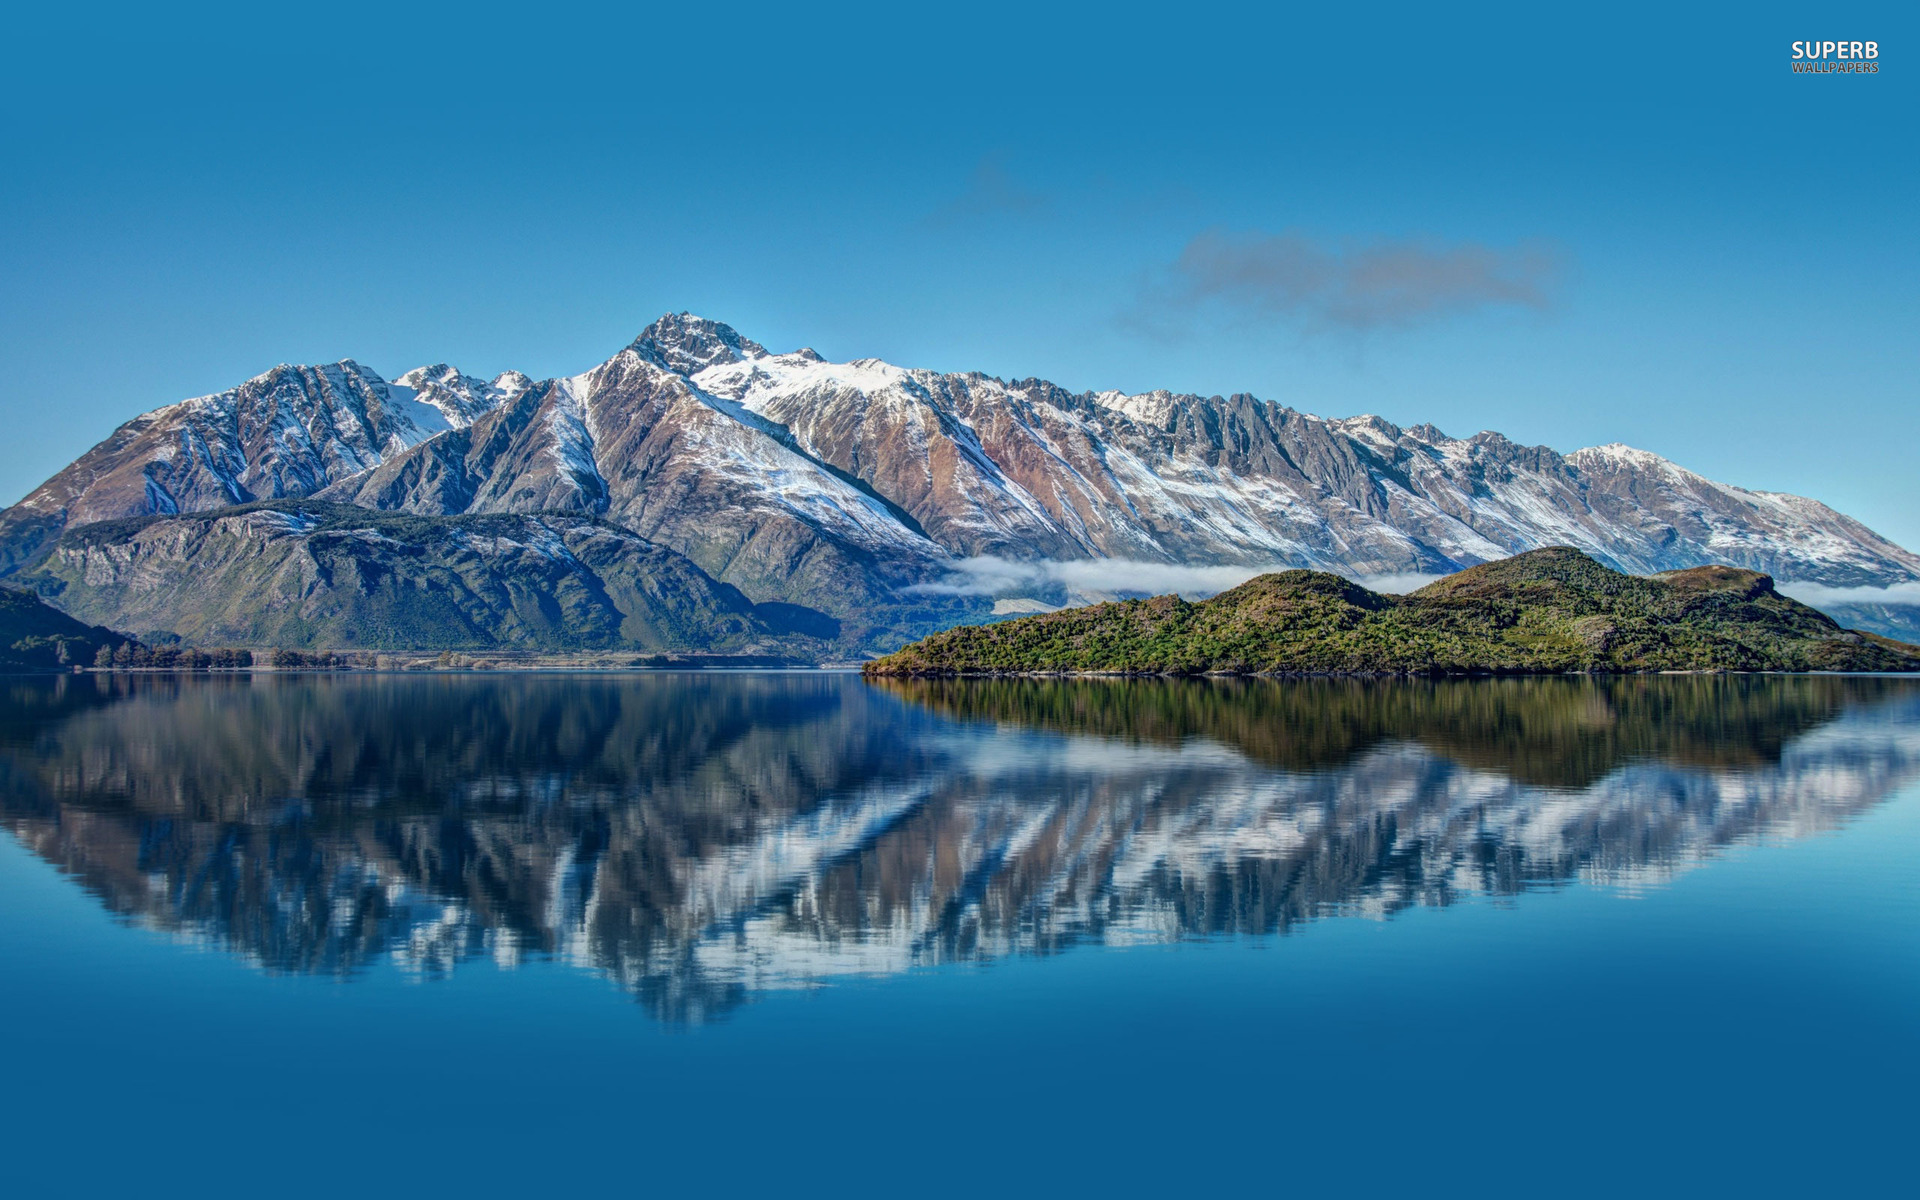 Lake Forest Sports Cars >> Pyramid Lake New Zealand wallpapers | Pyramid Lake New Zealand stock photos